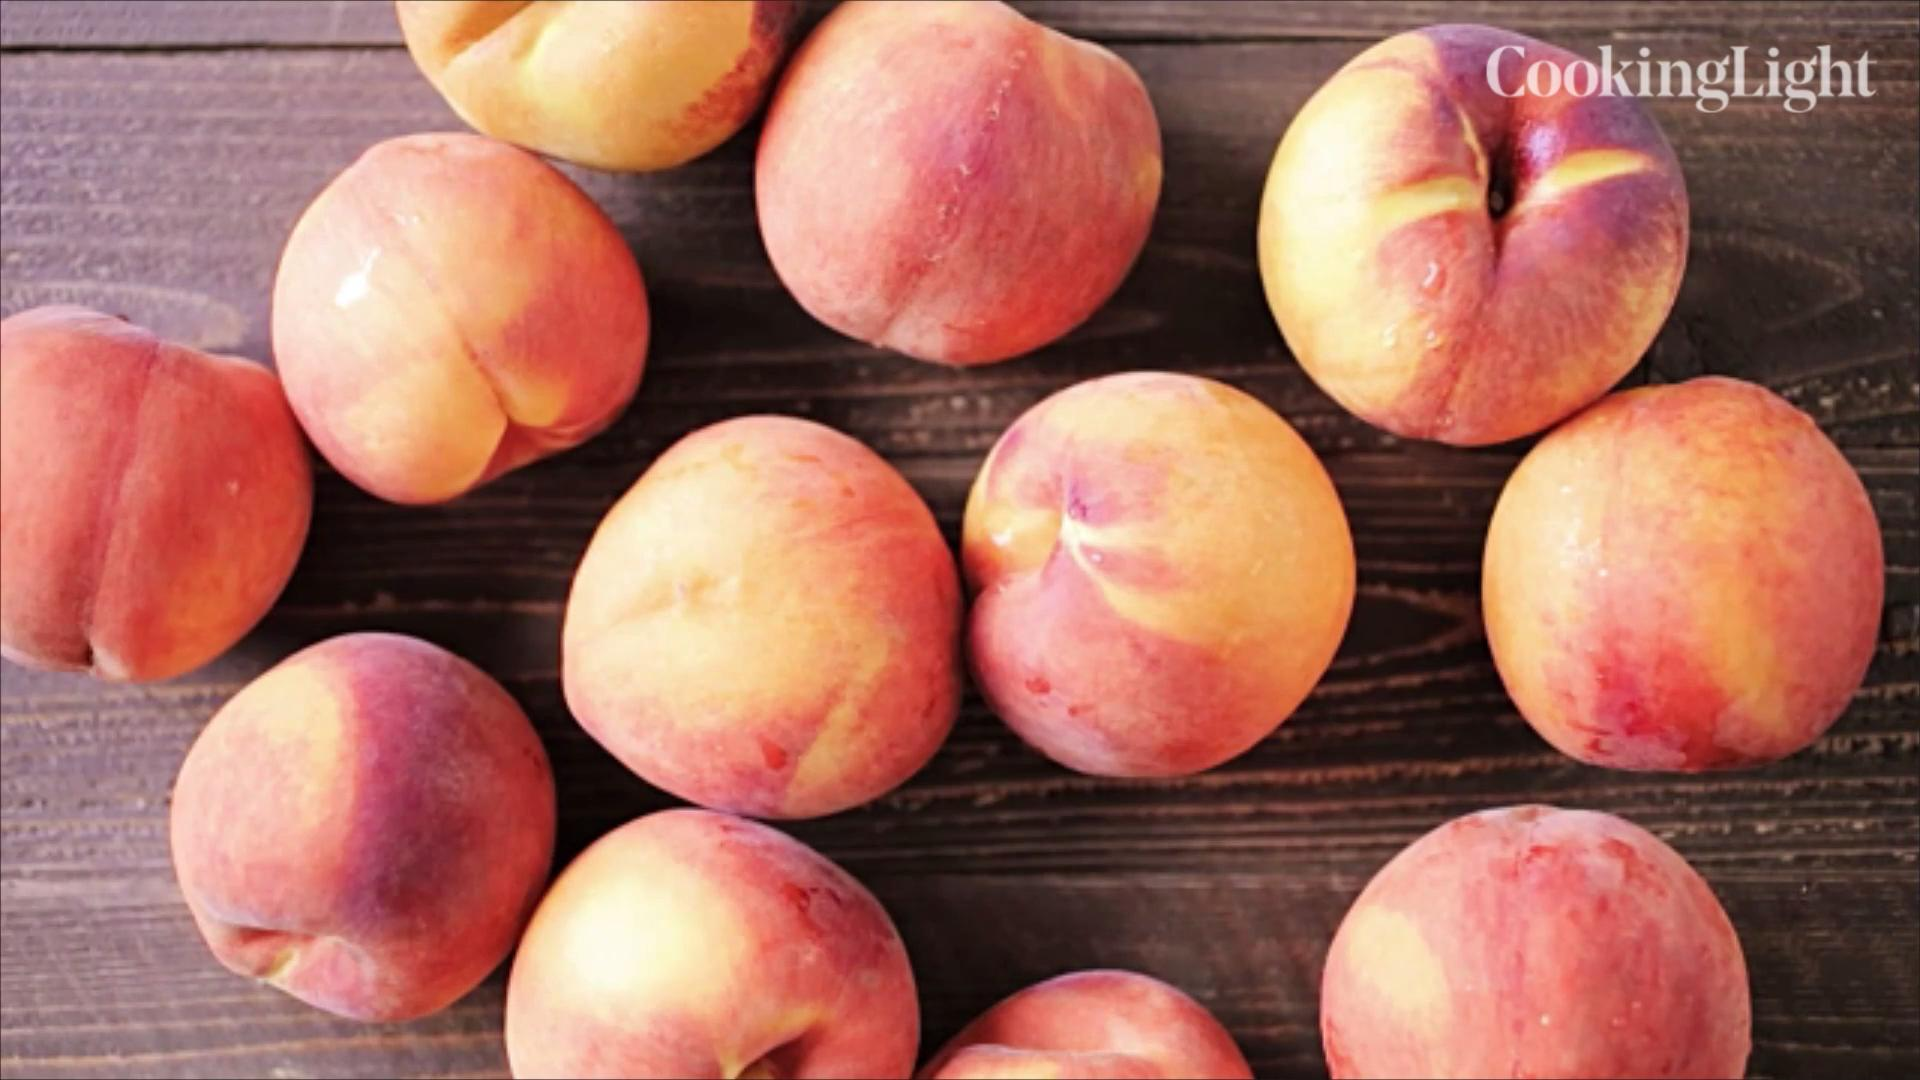 How To Store Peaches So They Last Longer And Taste Their Best Cooking Light,Wheat Pennies Value Chart